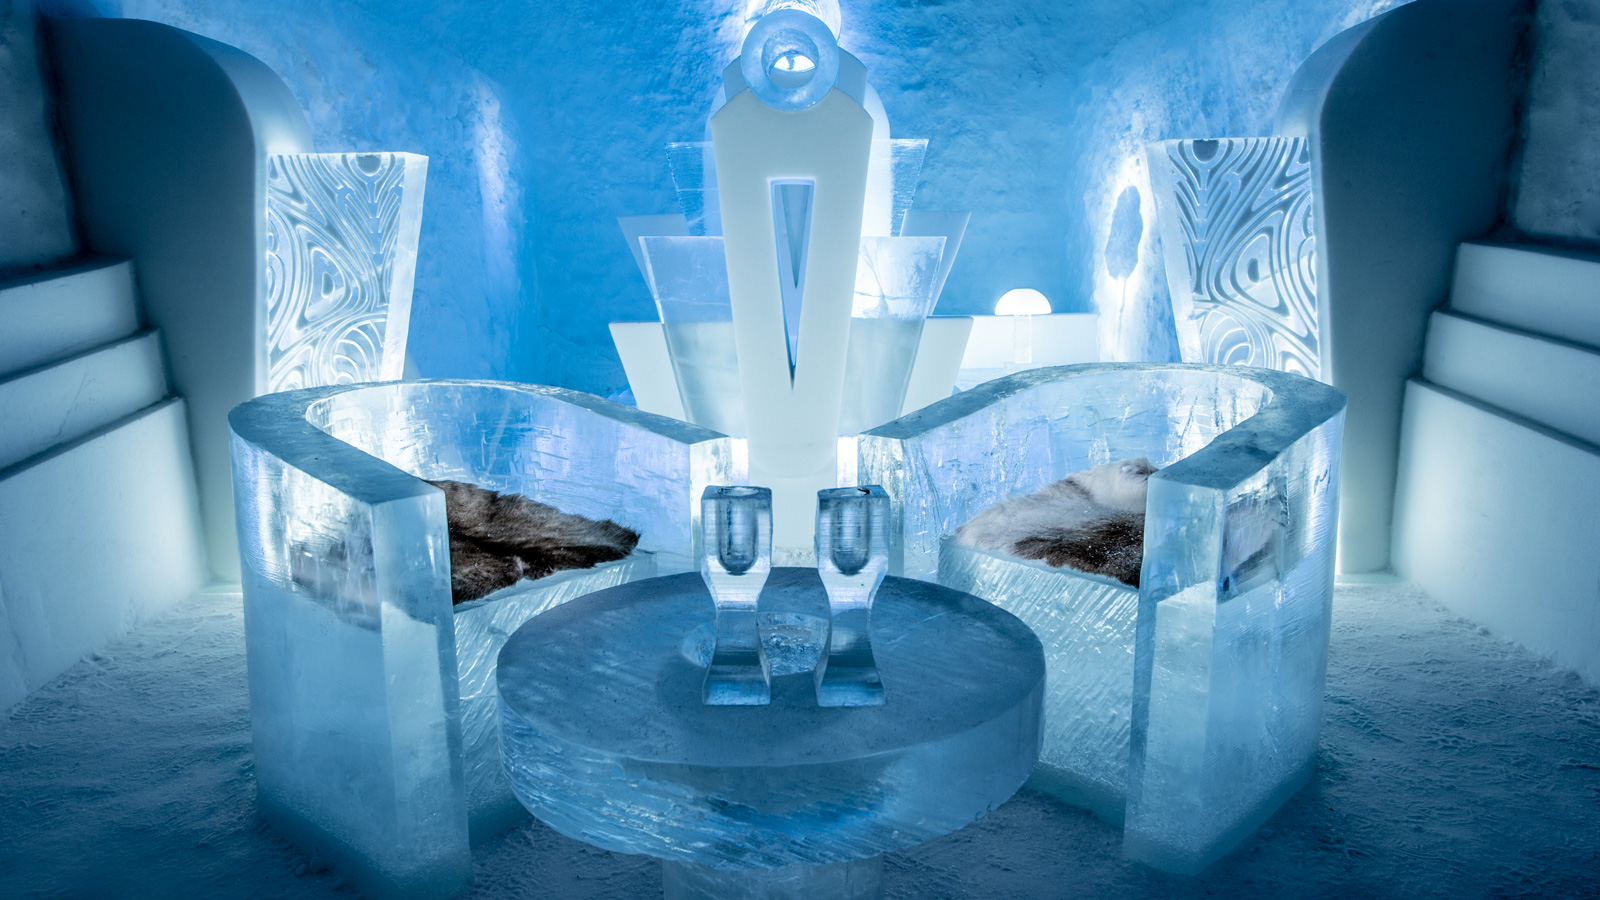 world's first permanent ice hotel opens | cnn travel